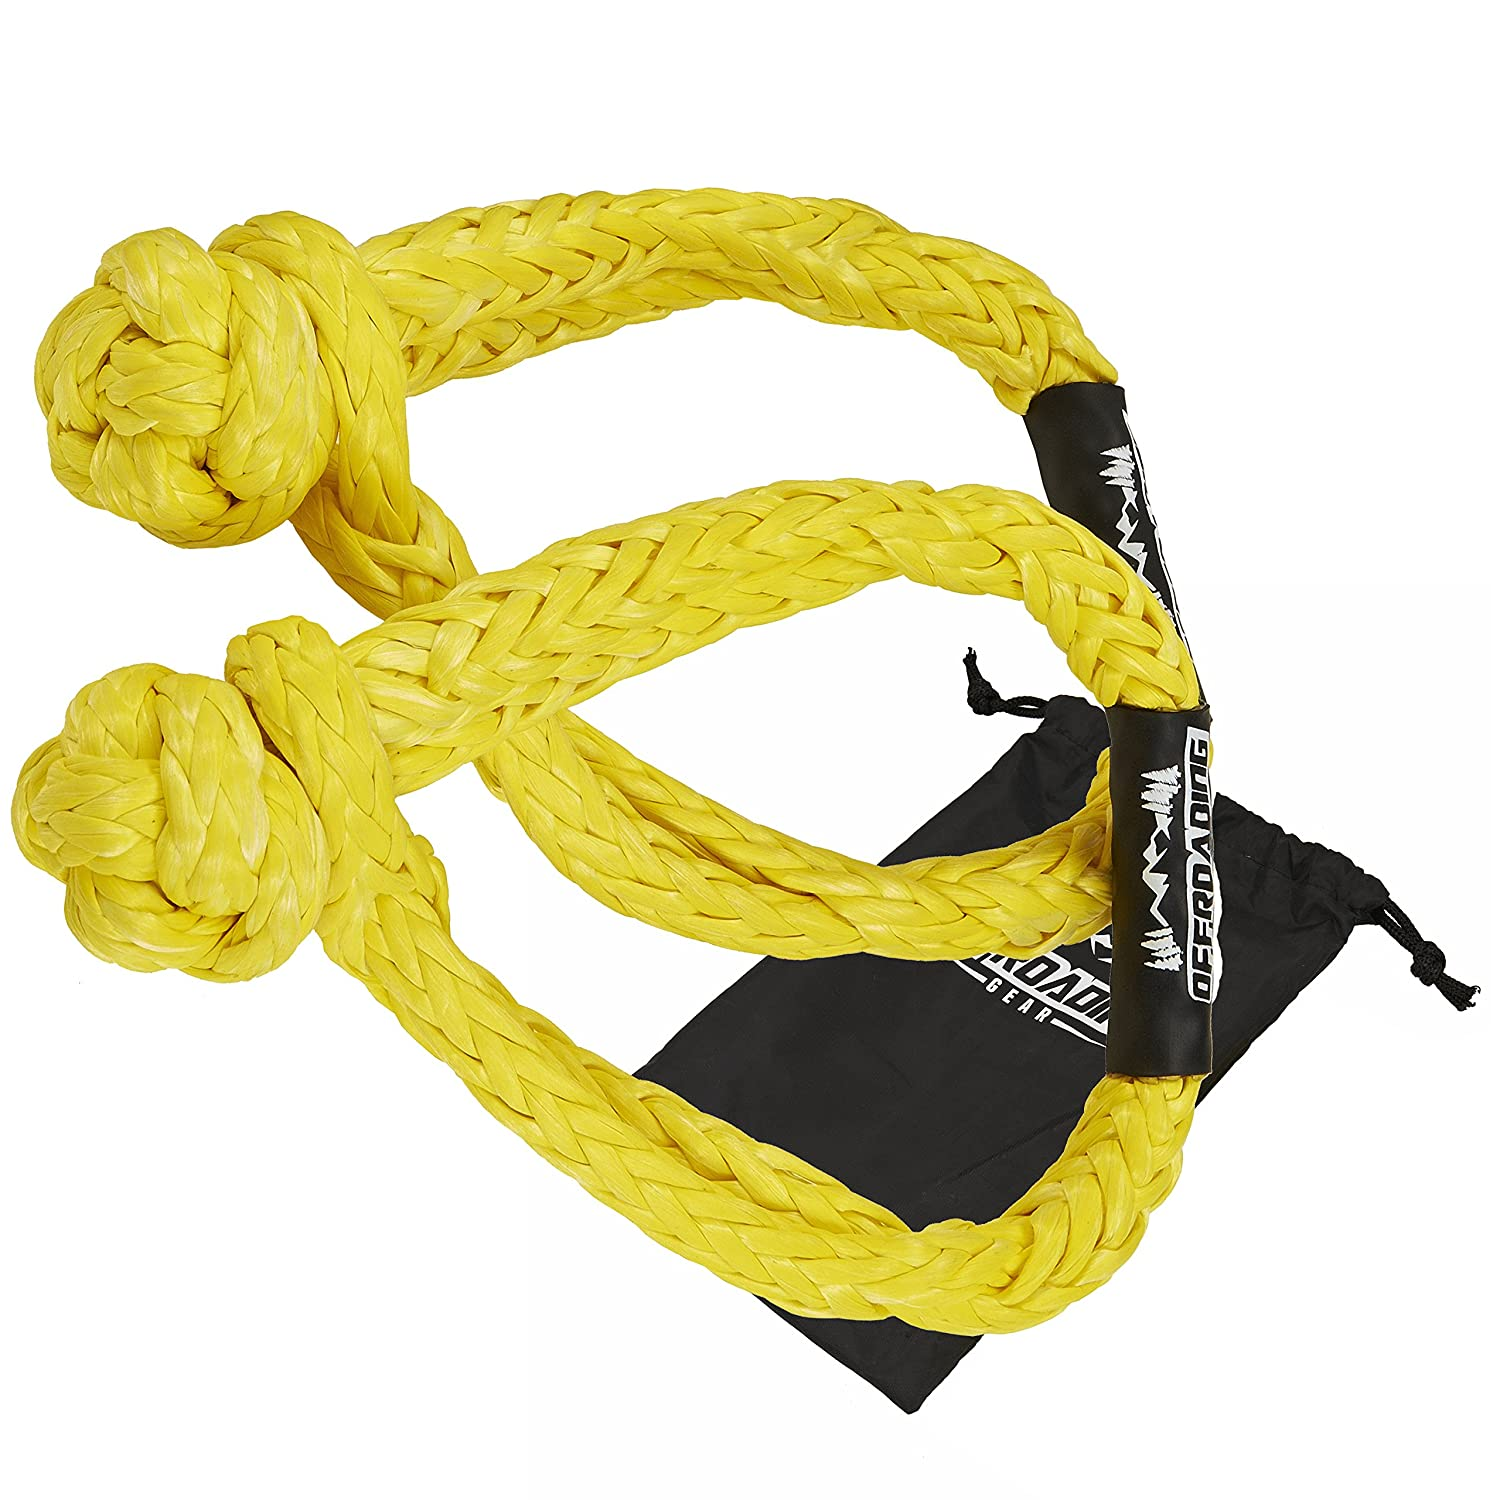 T/&HI-B07C92X9LH 30,000lbs Offroading Gear Set of Two 3//8 Synthetic Soft Rope Shackles w//Free Storage Bag